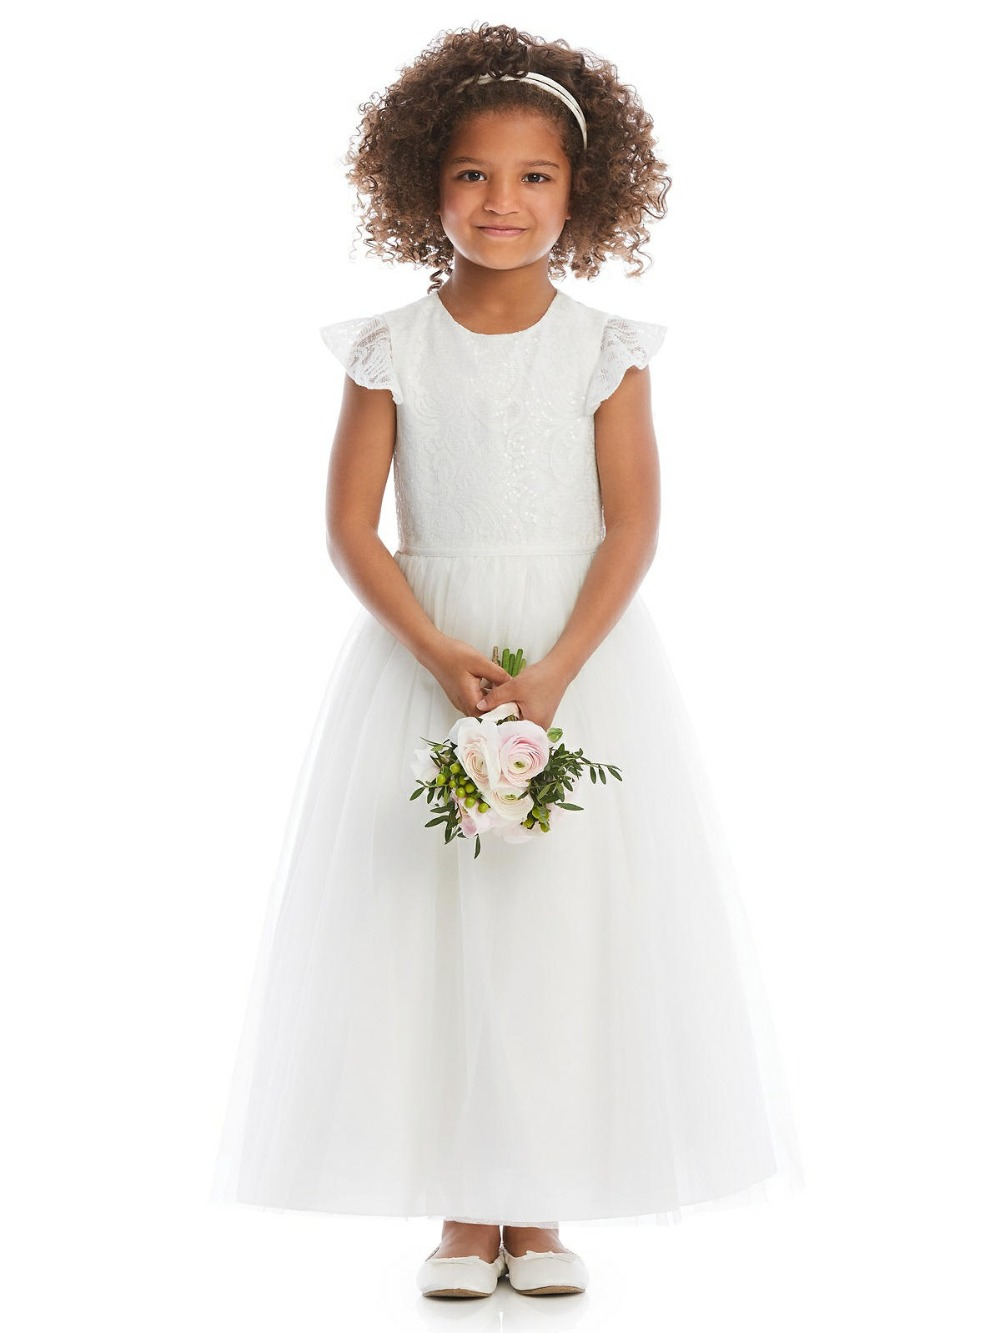 2019 New Flower Girl Dresses for Weddings A-Line Lace Little Girls First Communion Pageant Gowns